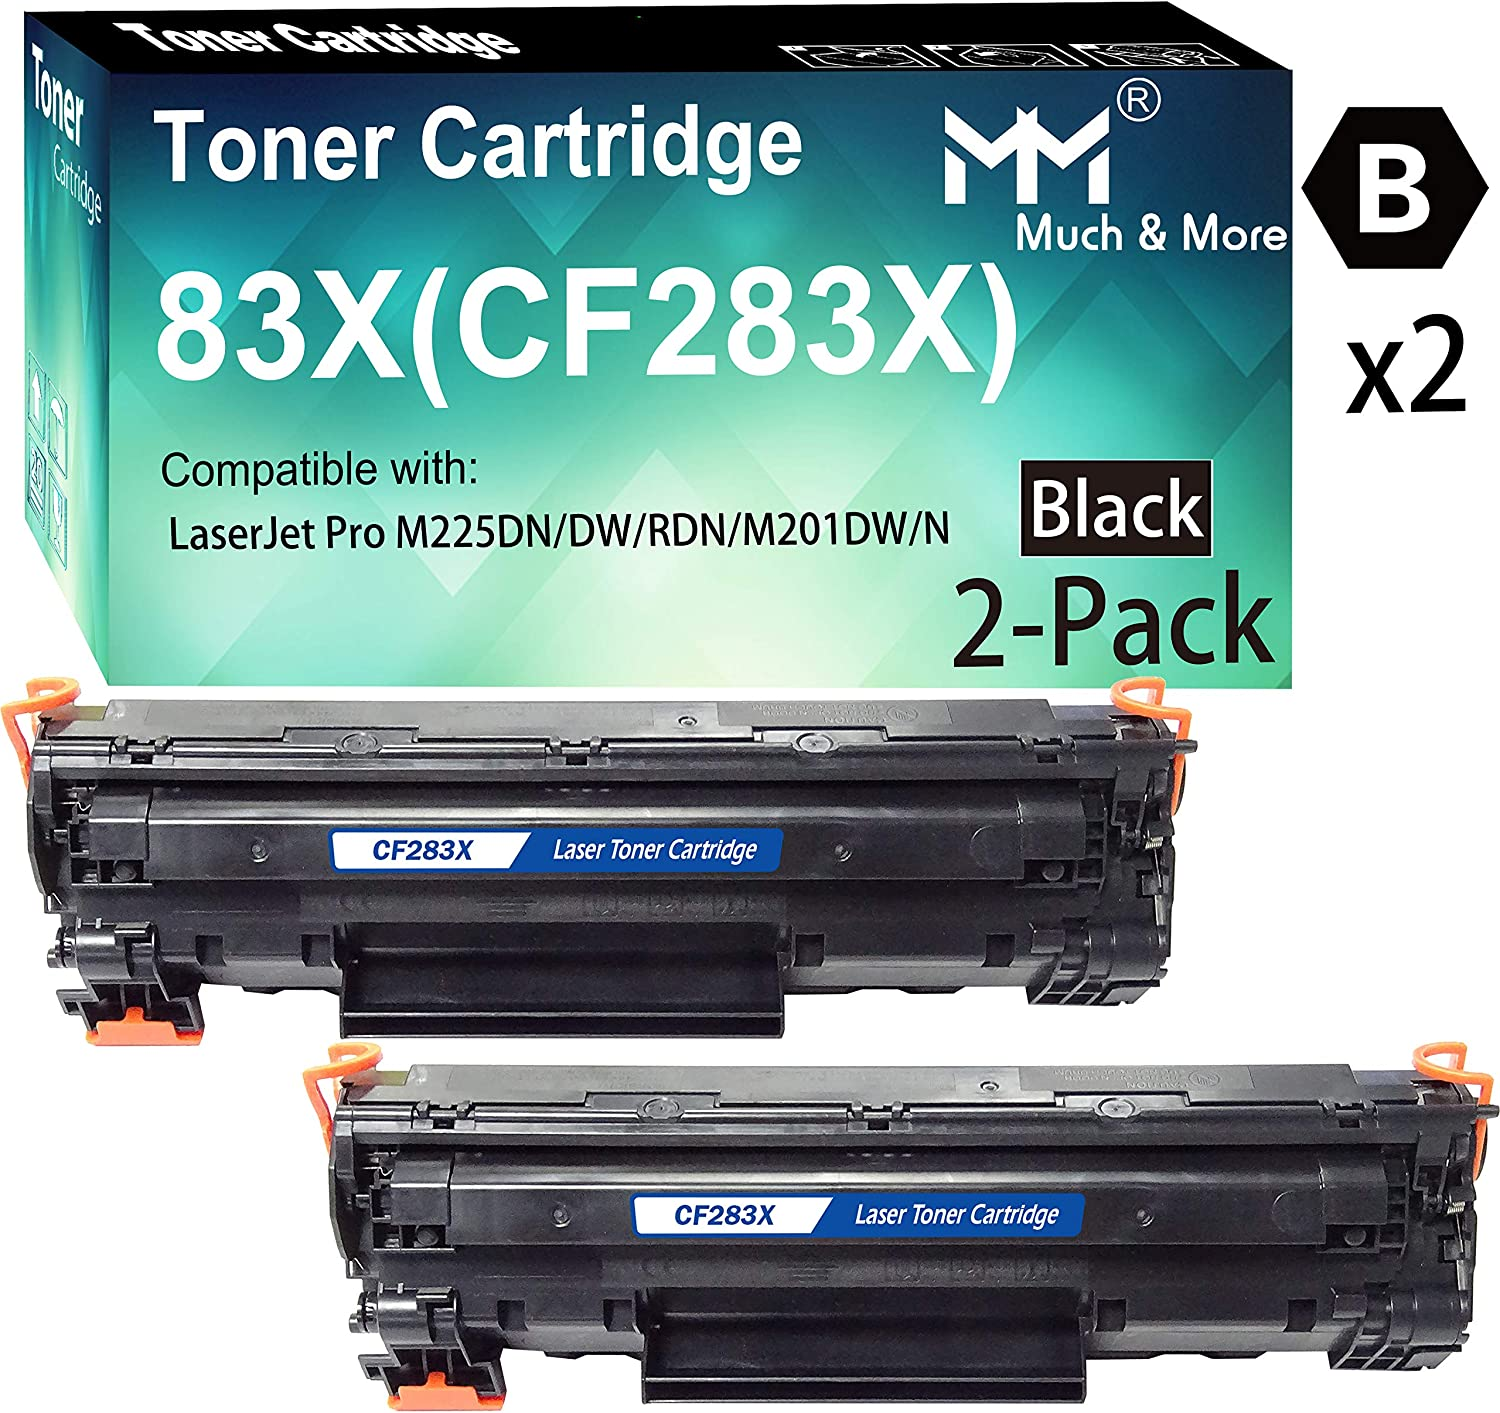 (2-Pack, Black) Compatible 283X CF283X Toner Cartridge 83X Used for HP Laserjet Pro M201 M201dw M225dn M225dw Printer, by MuchMore